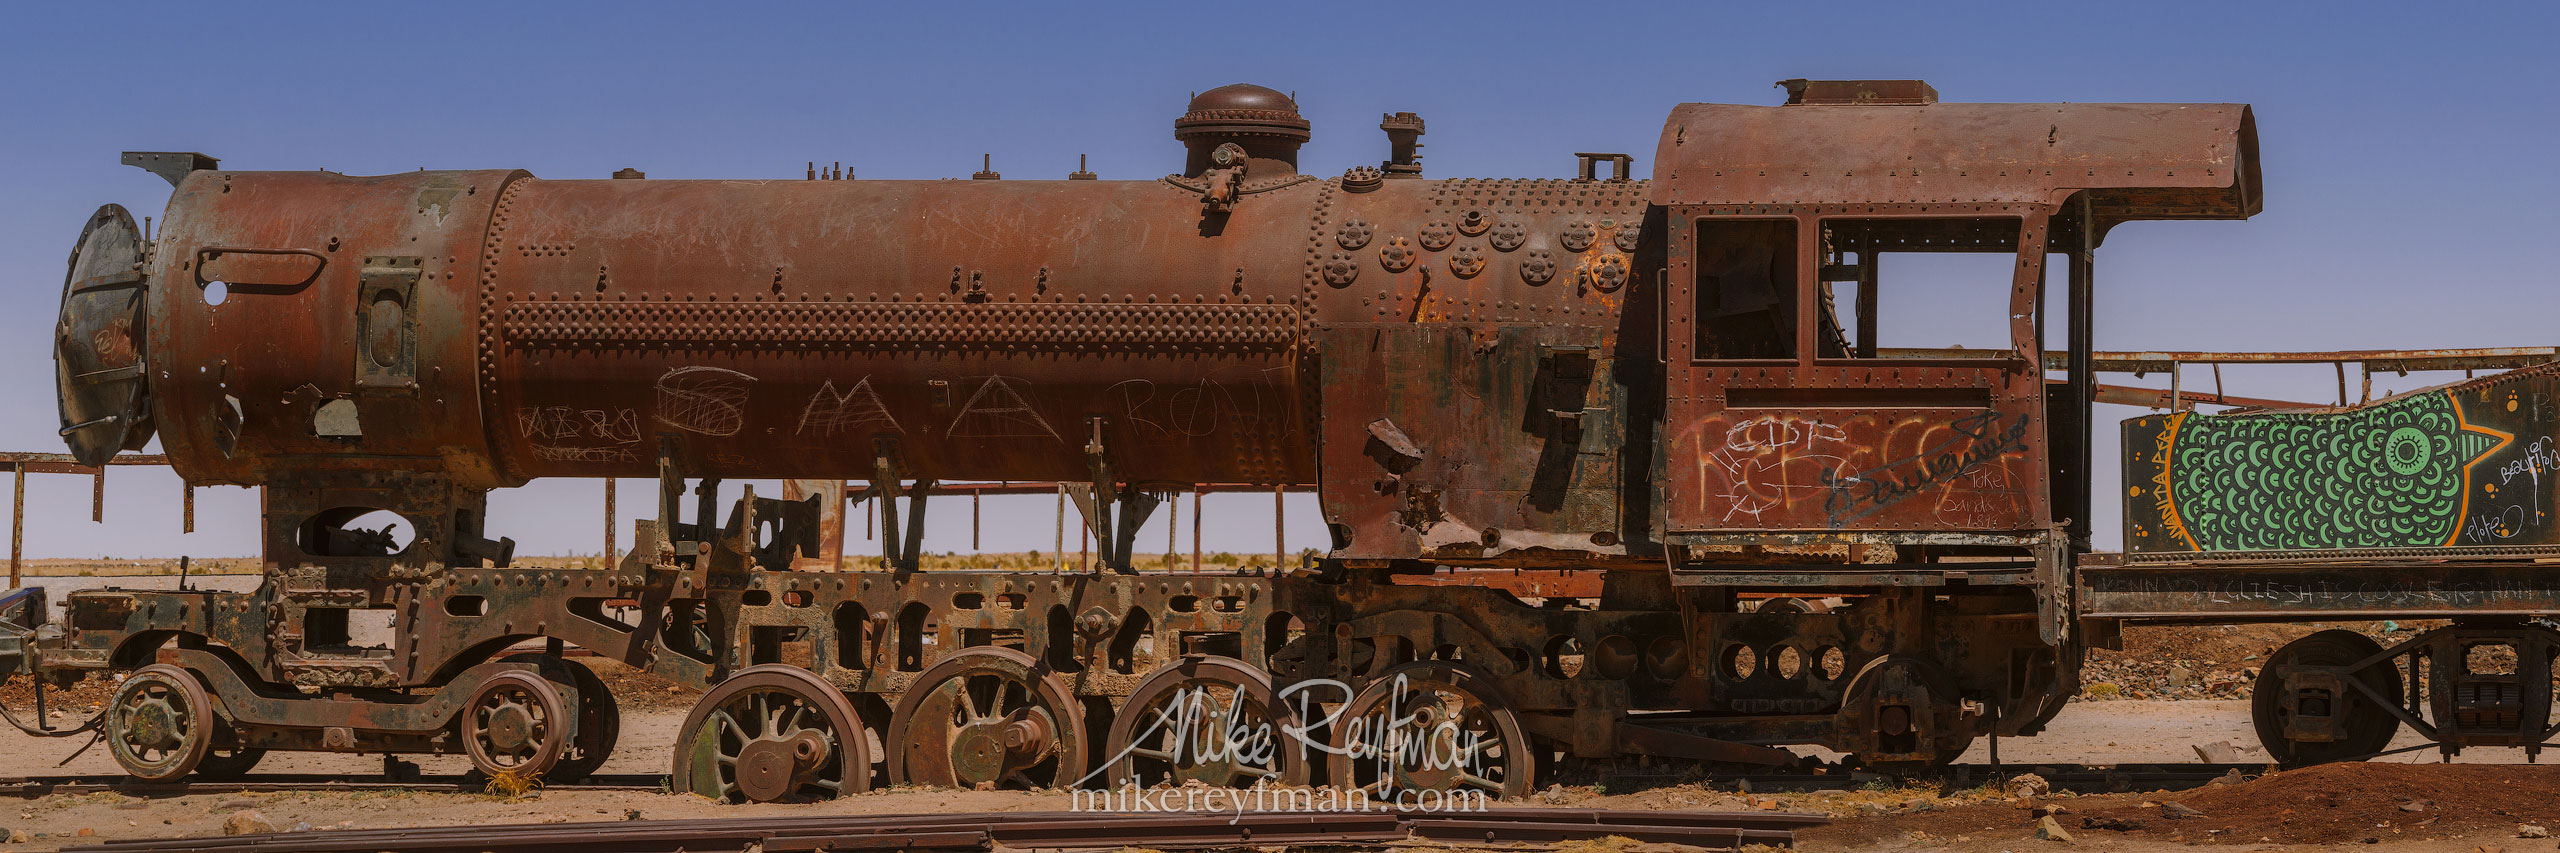 The ''Cementerio de trenes'', the antique train cemetery. Salar de Uyuni, Altiplano. Daniel Campos Province, Potosí, Bolivia AA1-AIR2065_Pano_1x3_3 - Atacama and Altiplano. The Driest Desert and The High Plain - Mike Reyfman Photography